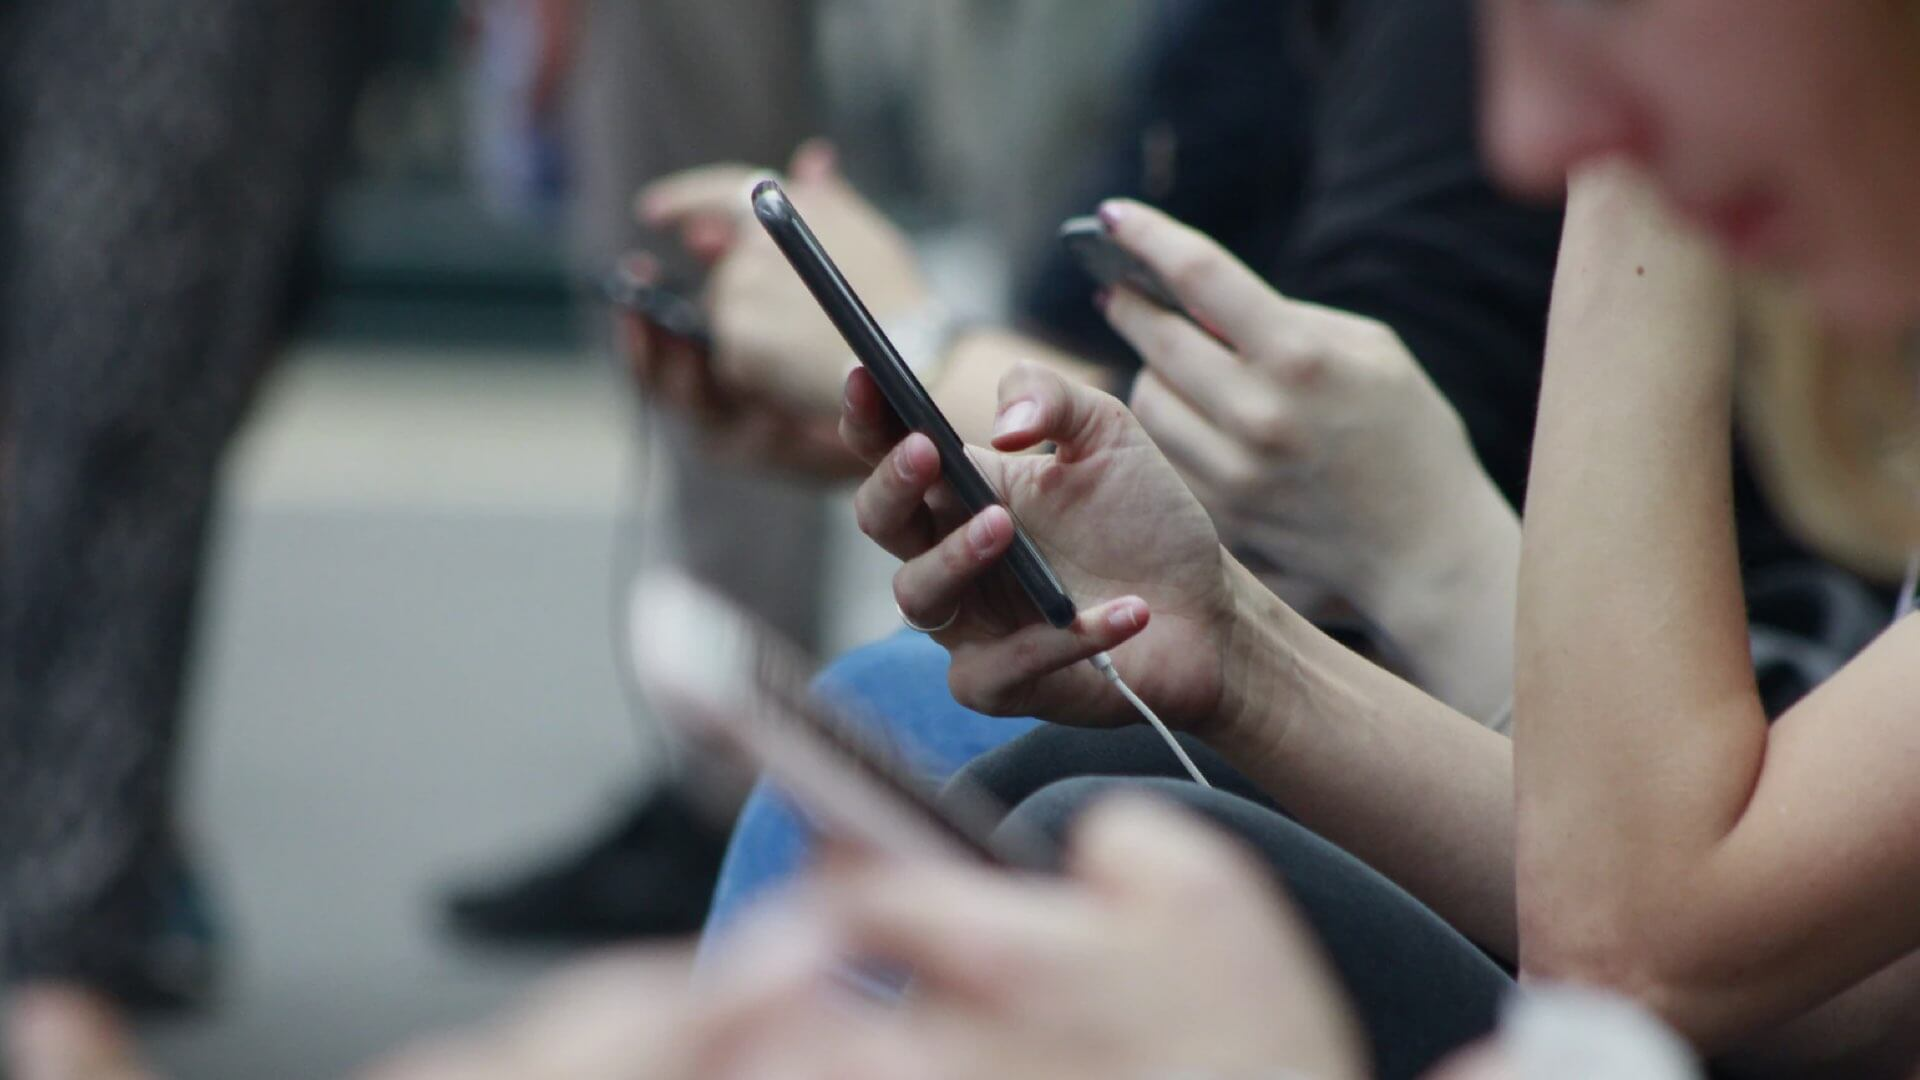 A queue of people seated outdoors, scrolling on their smart phones